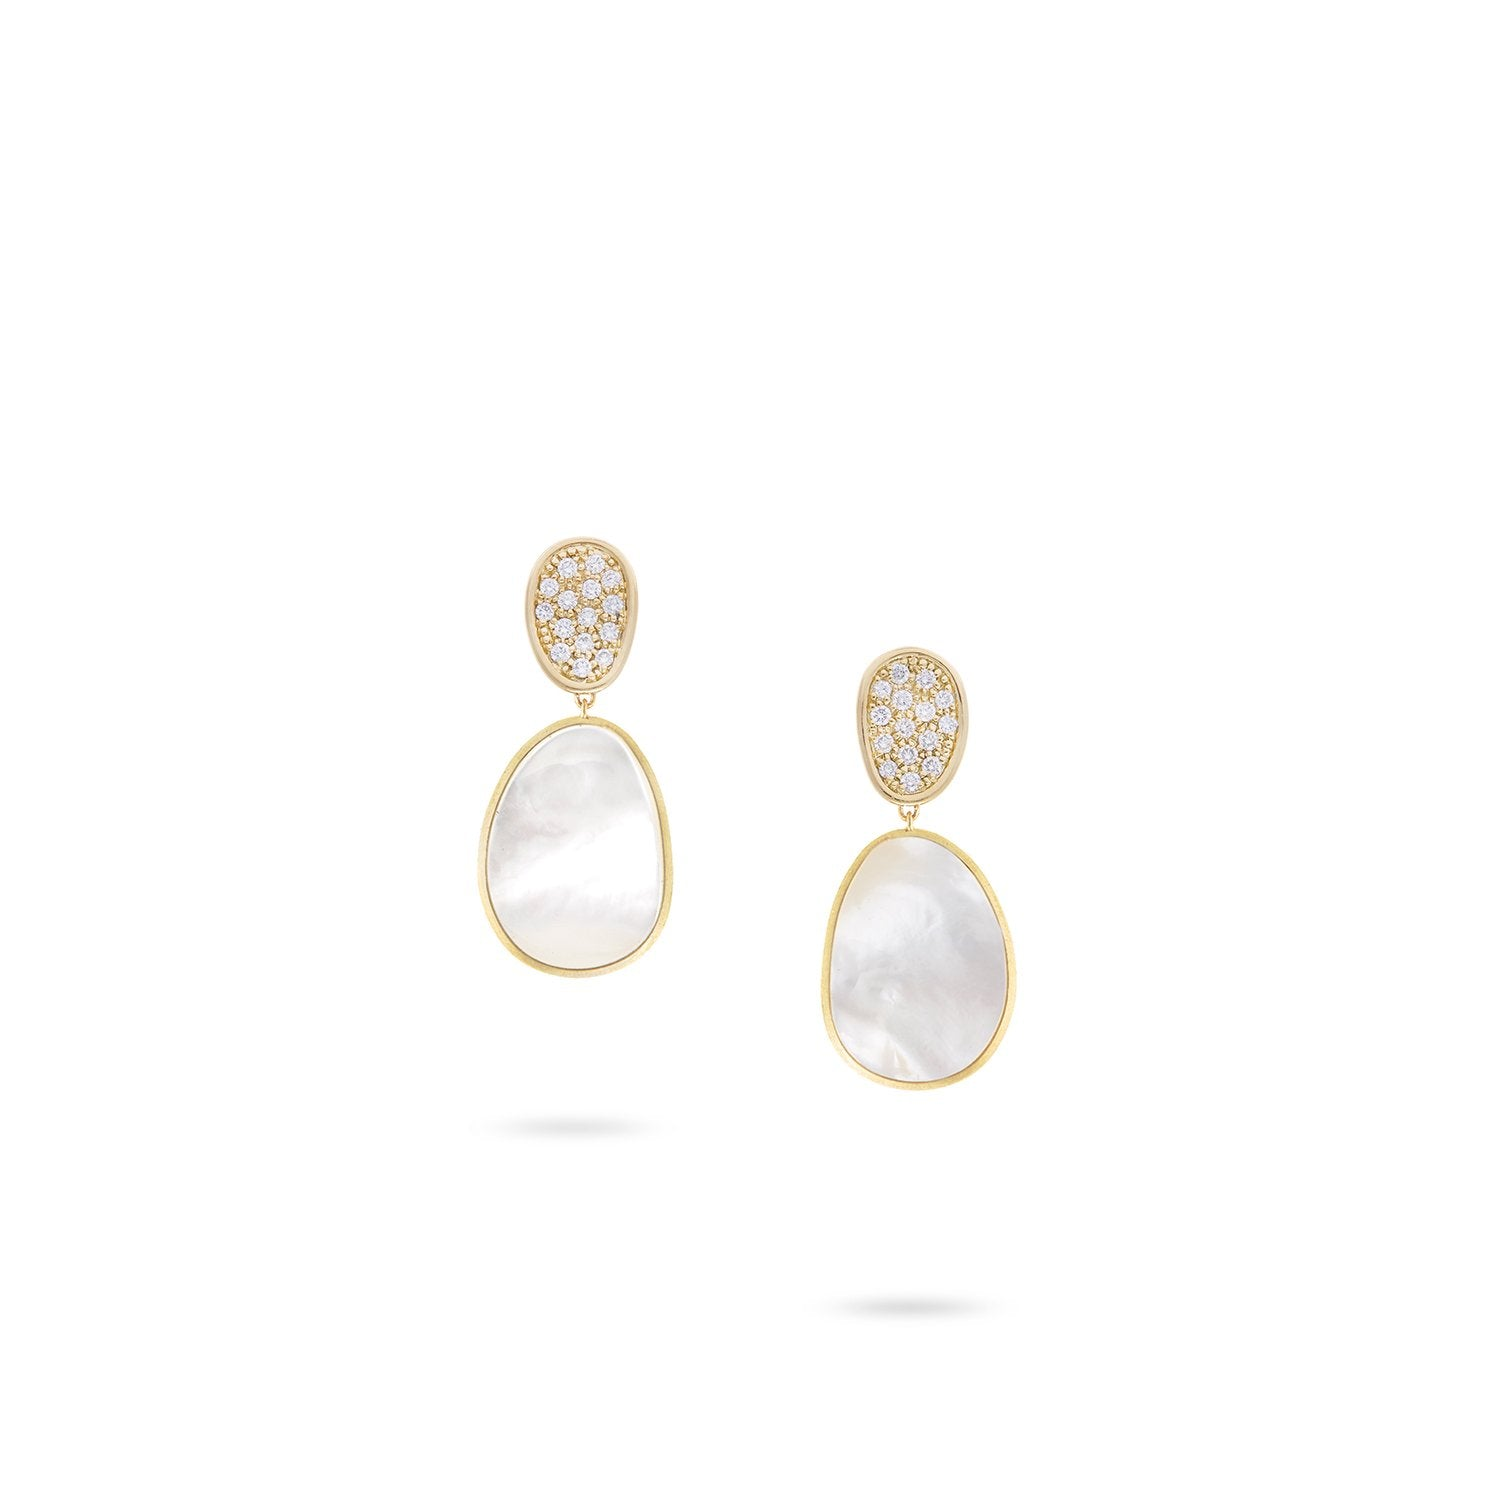 Lunaria 18K Yellow Gold and Diamond White Mother of Pearl Small Drop Earrings